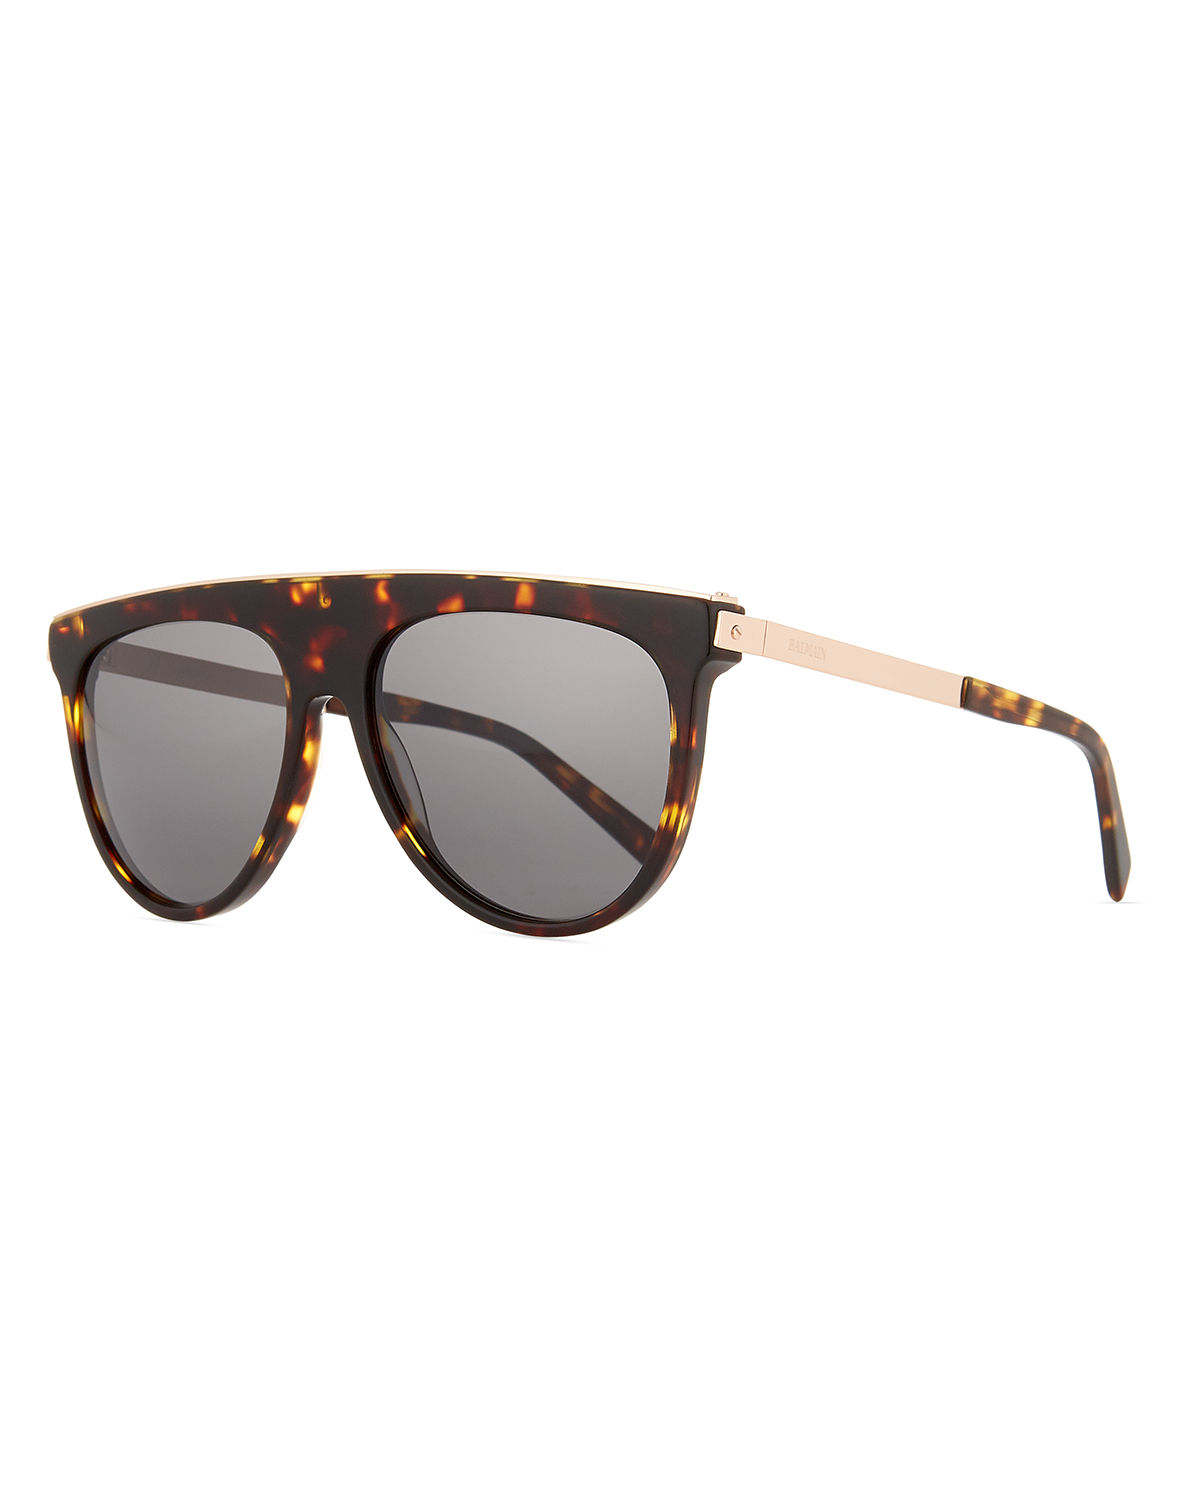 Acetate & Metal Flattop Aviator Sunglasses